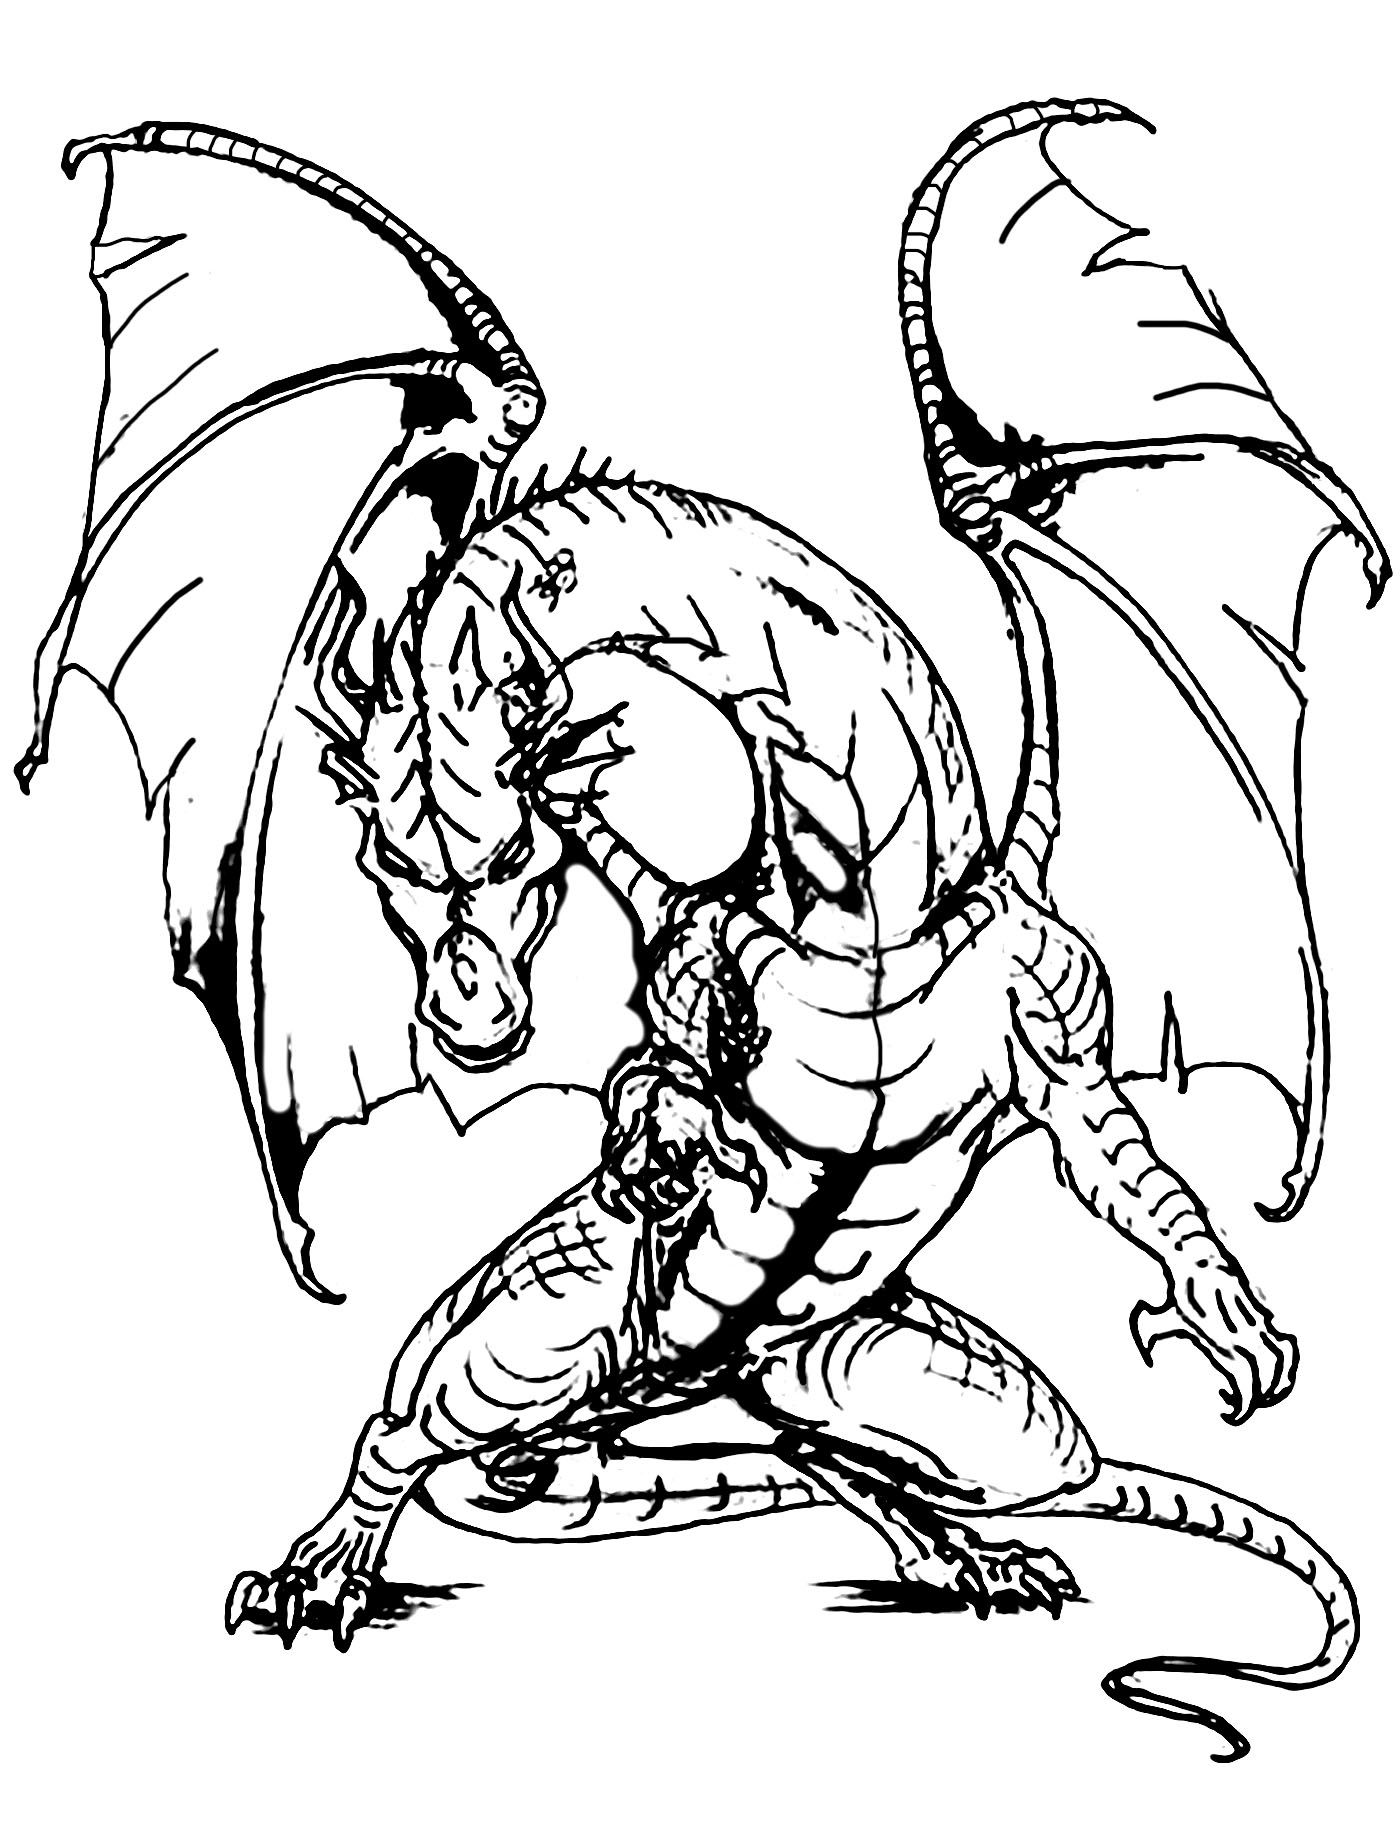 New Coloring Pages Dragons For You | Dragon coloring page, Horse coloring  pages, Adult coloring pages